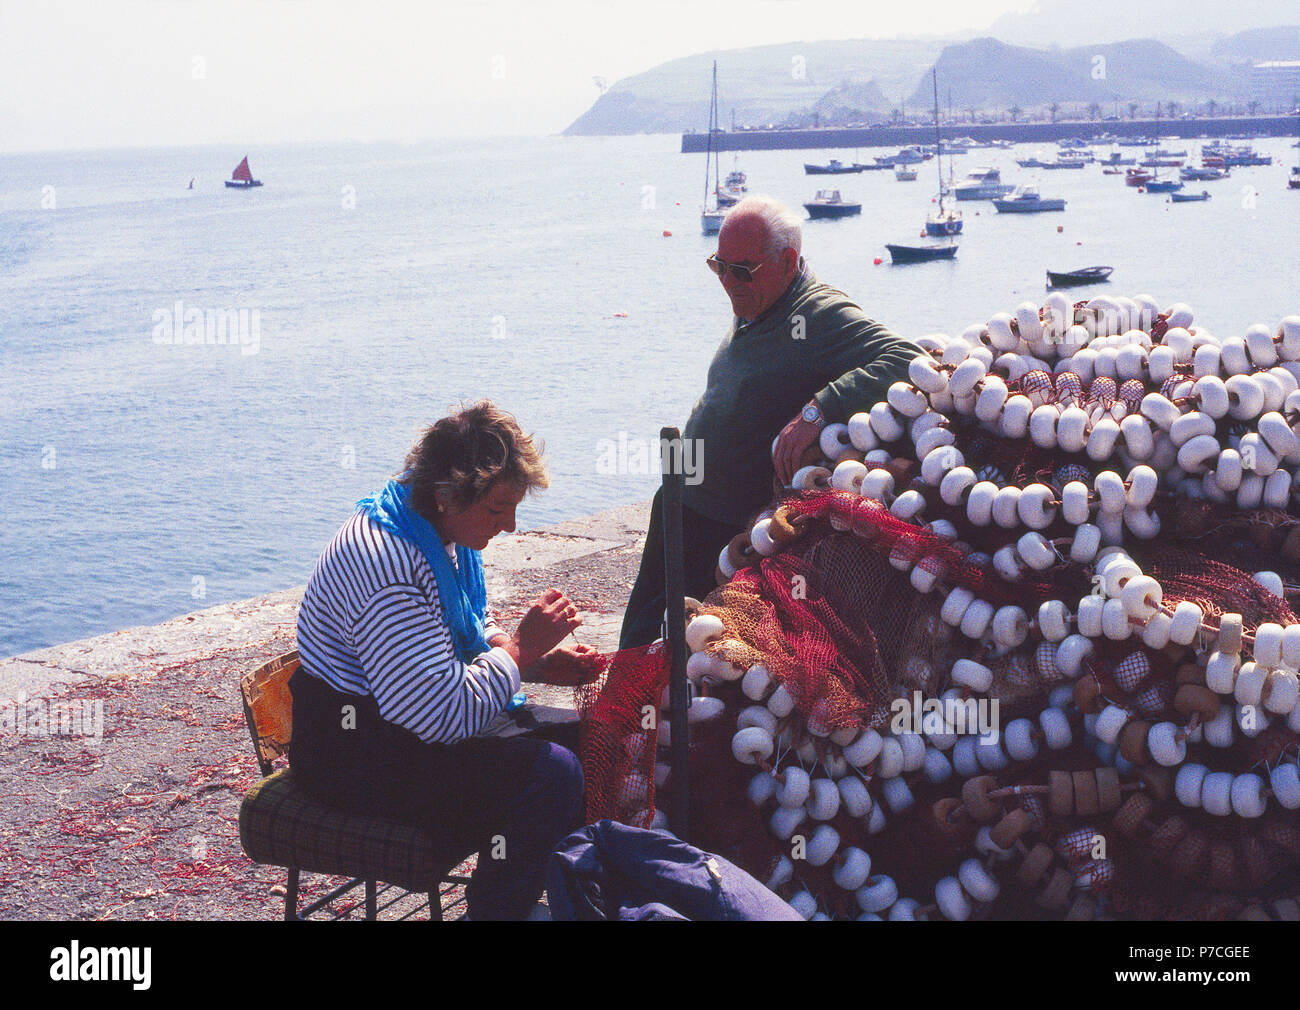 Woman sewing fishing nets at the harbour. Castro Urdiales, Cantabria, Spain. - Stock Image